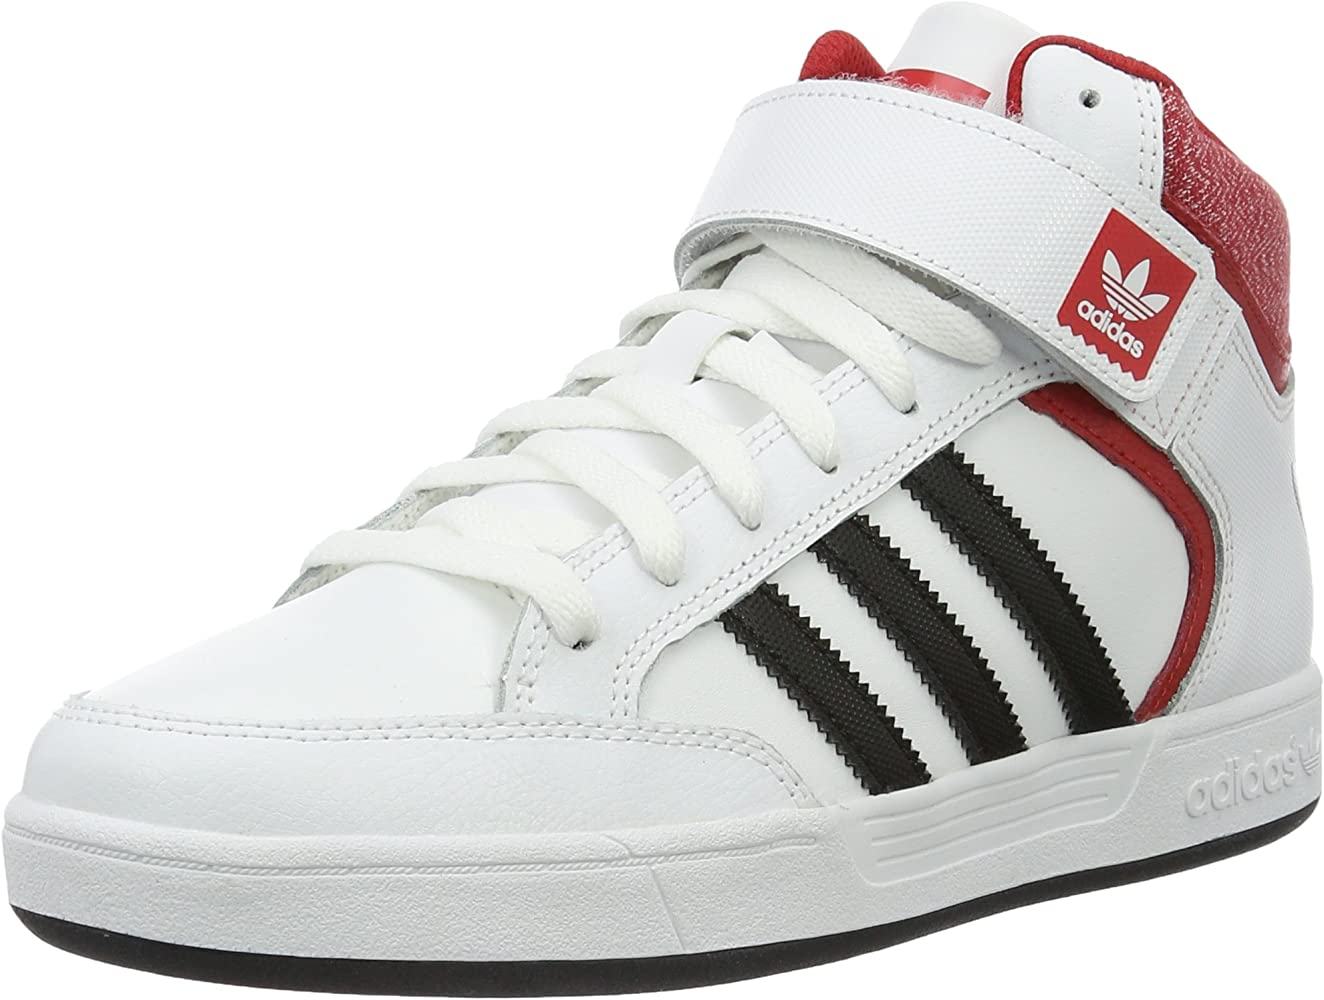 adidas Varial Mid, Baskets Hautes Homme, Blanc (FTWR White